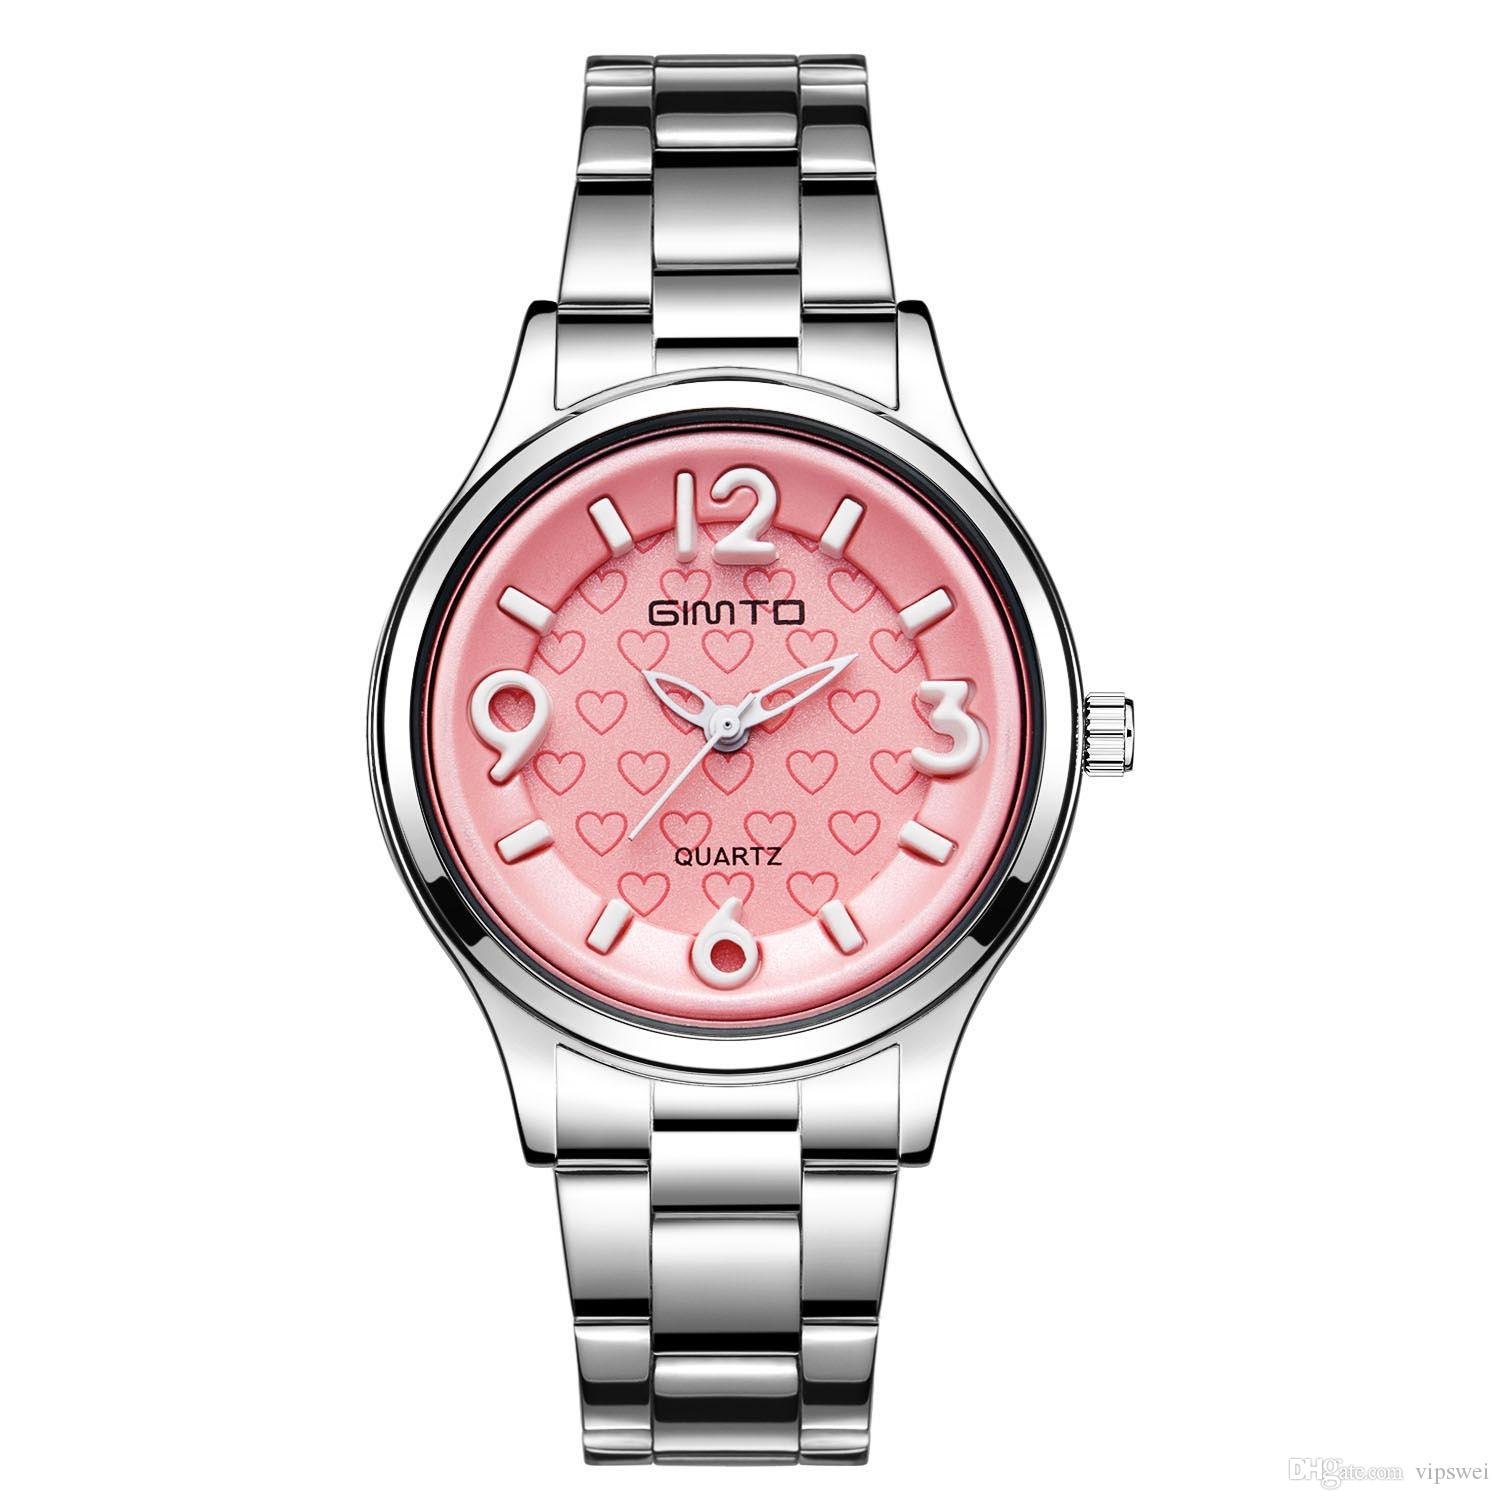 Women Costume Watch Ladies Fashion Dress Watches High Quality Student Luxury Heart Shaped Wristwatch Pink Dial Stainless Steel Strap Online Shopping Clothes ...  sc 1 st  DHgate.com & Women Costume Watch Ladies Fashion Dress Watches High Quality ...